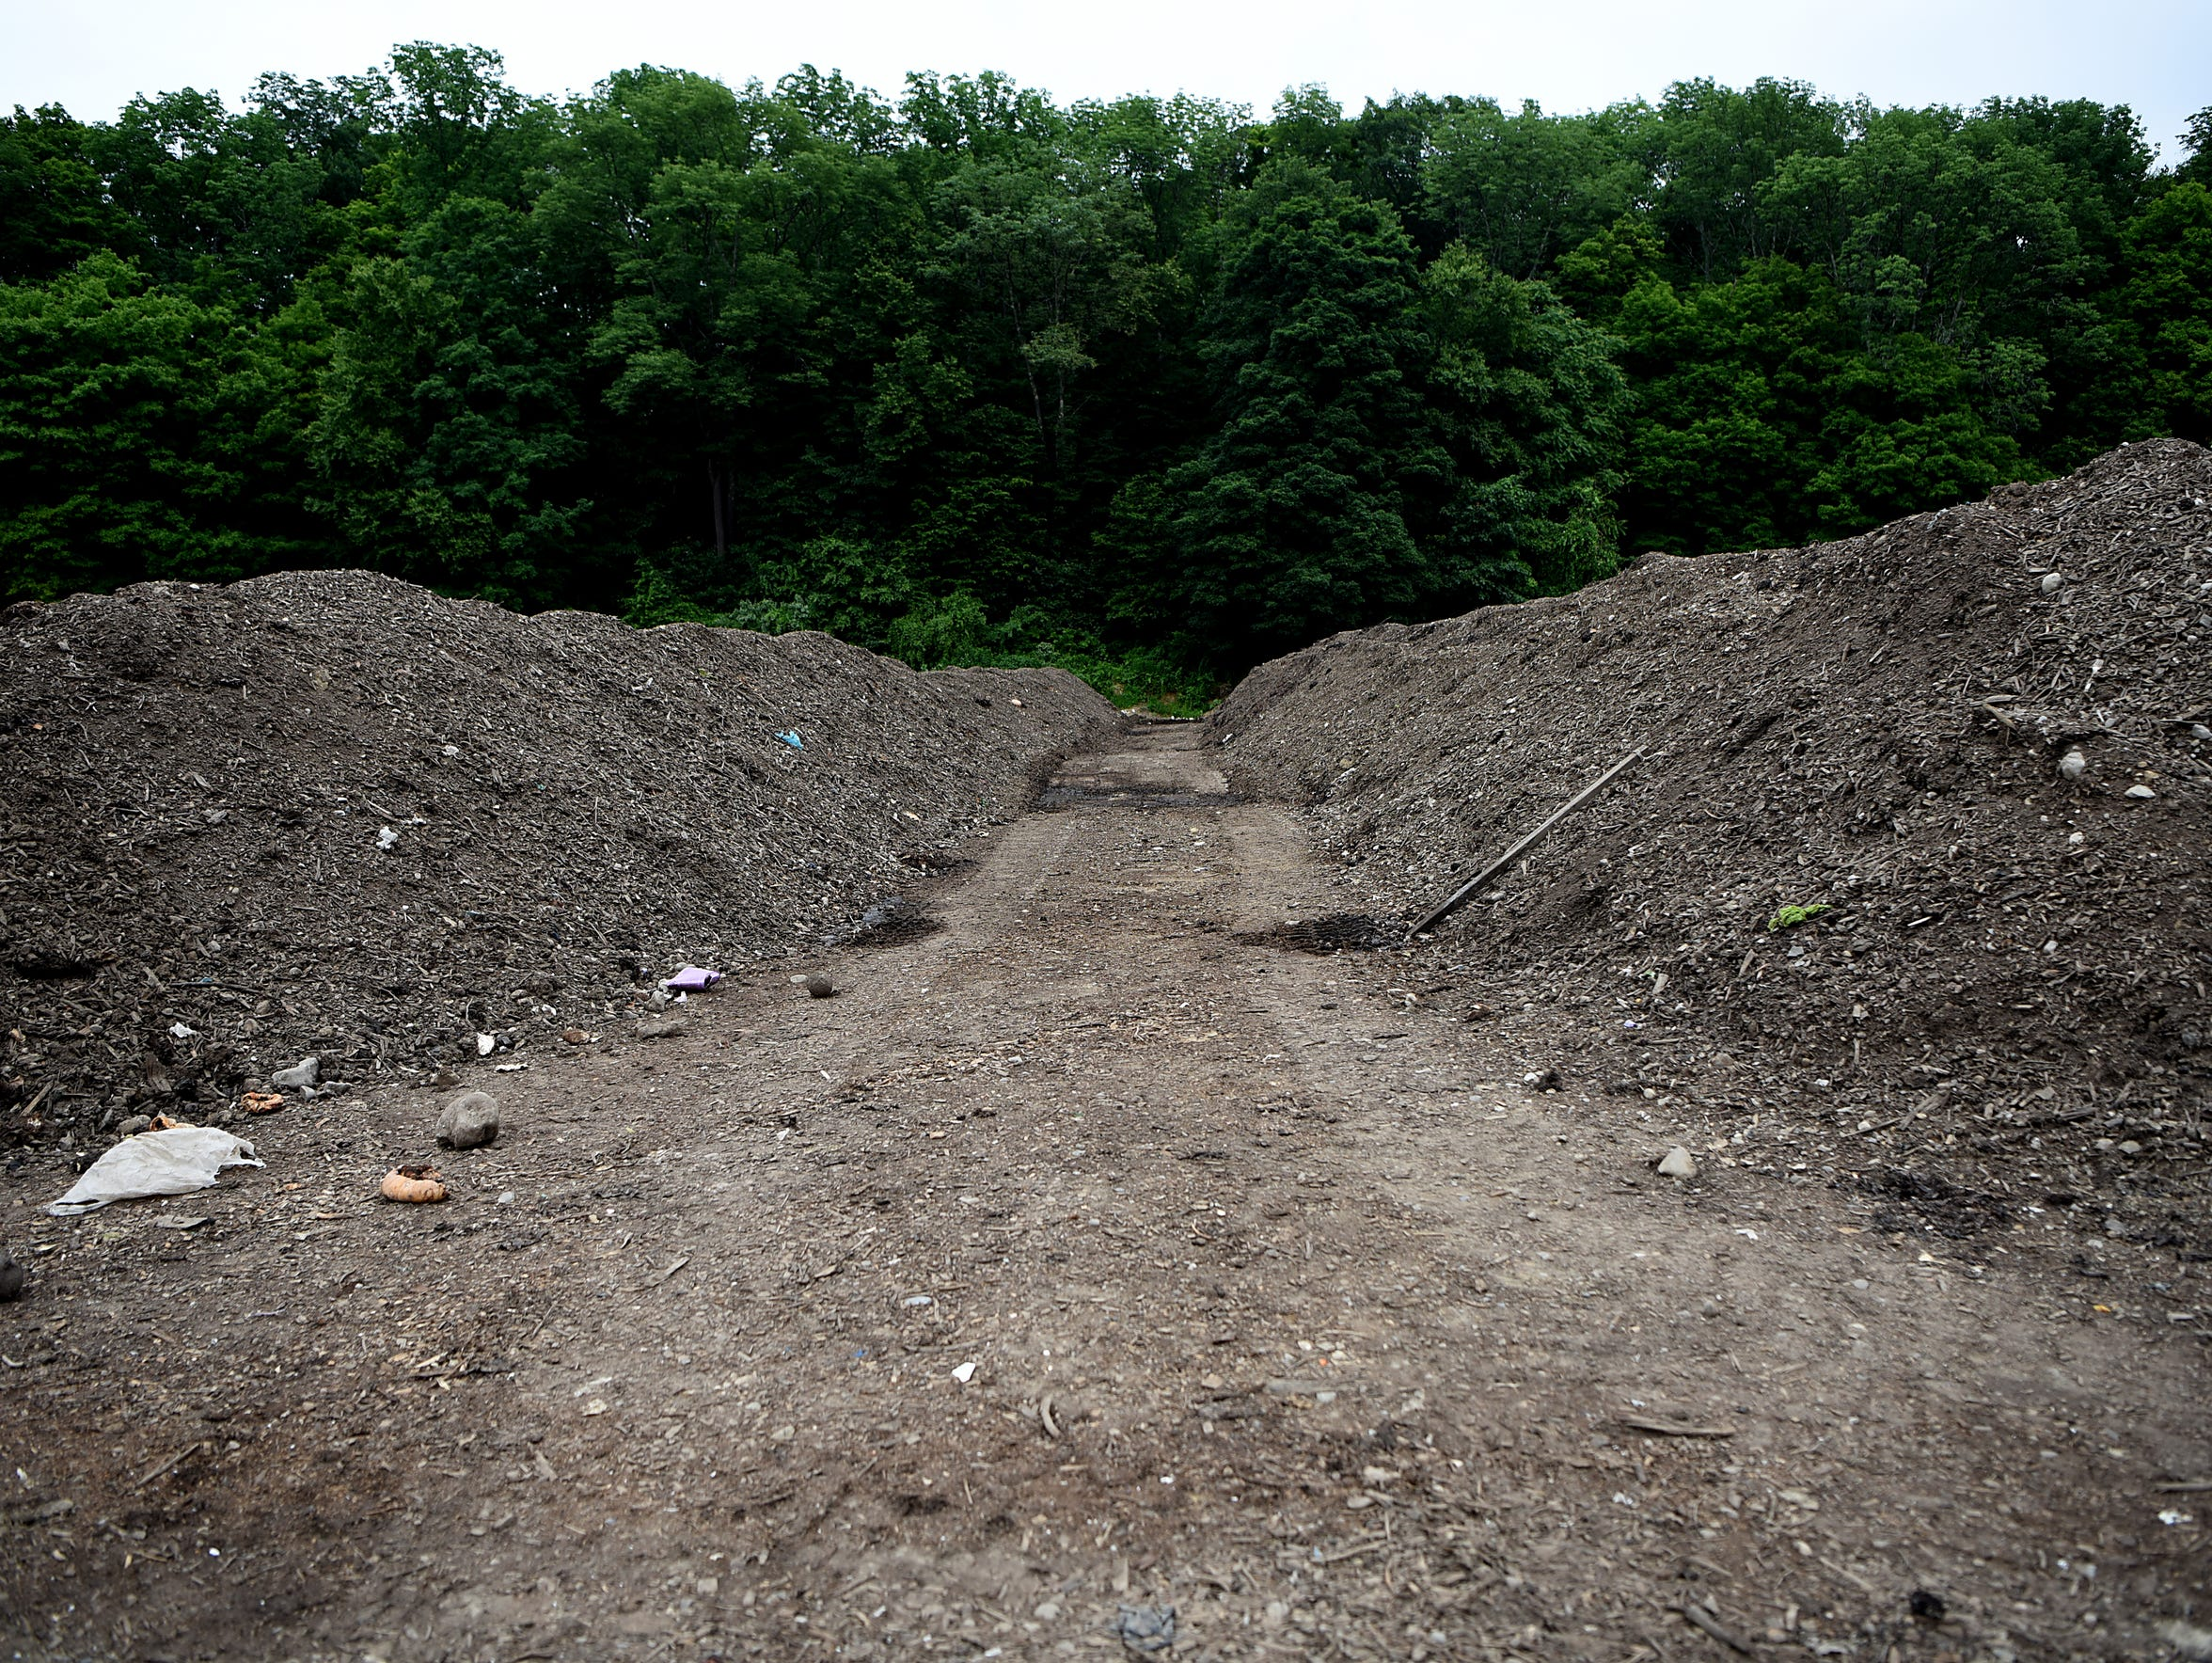 Ag Choice Organics Recycling in Andover, NJ recycles